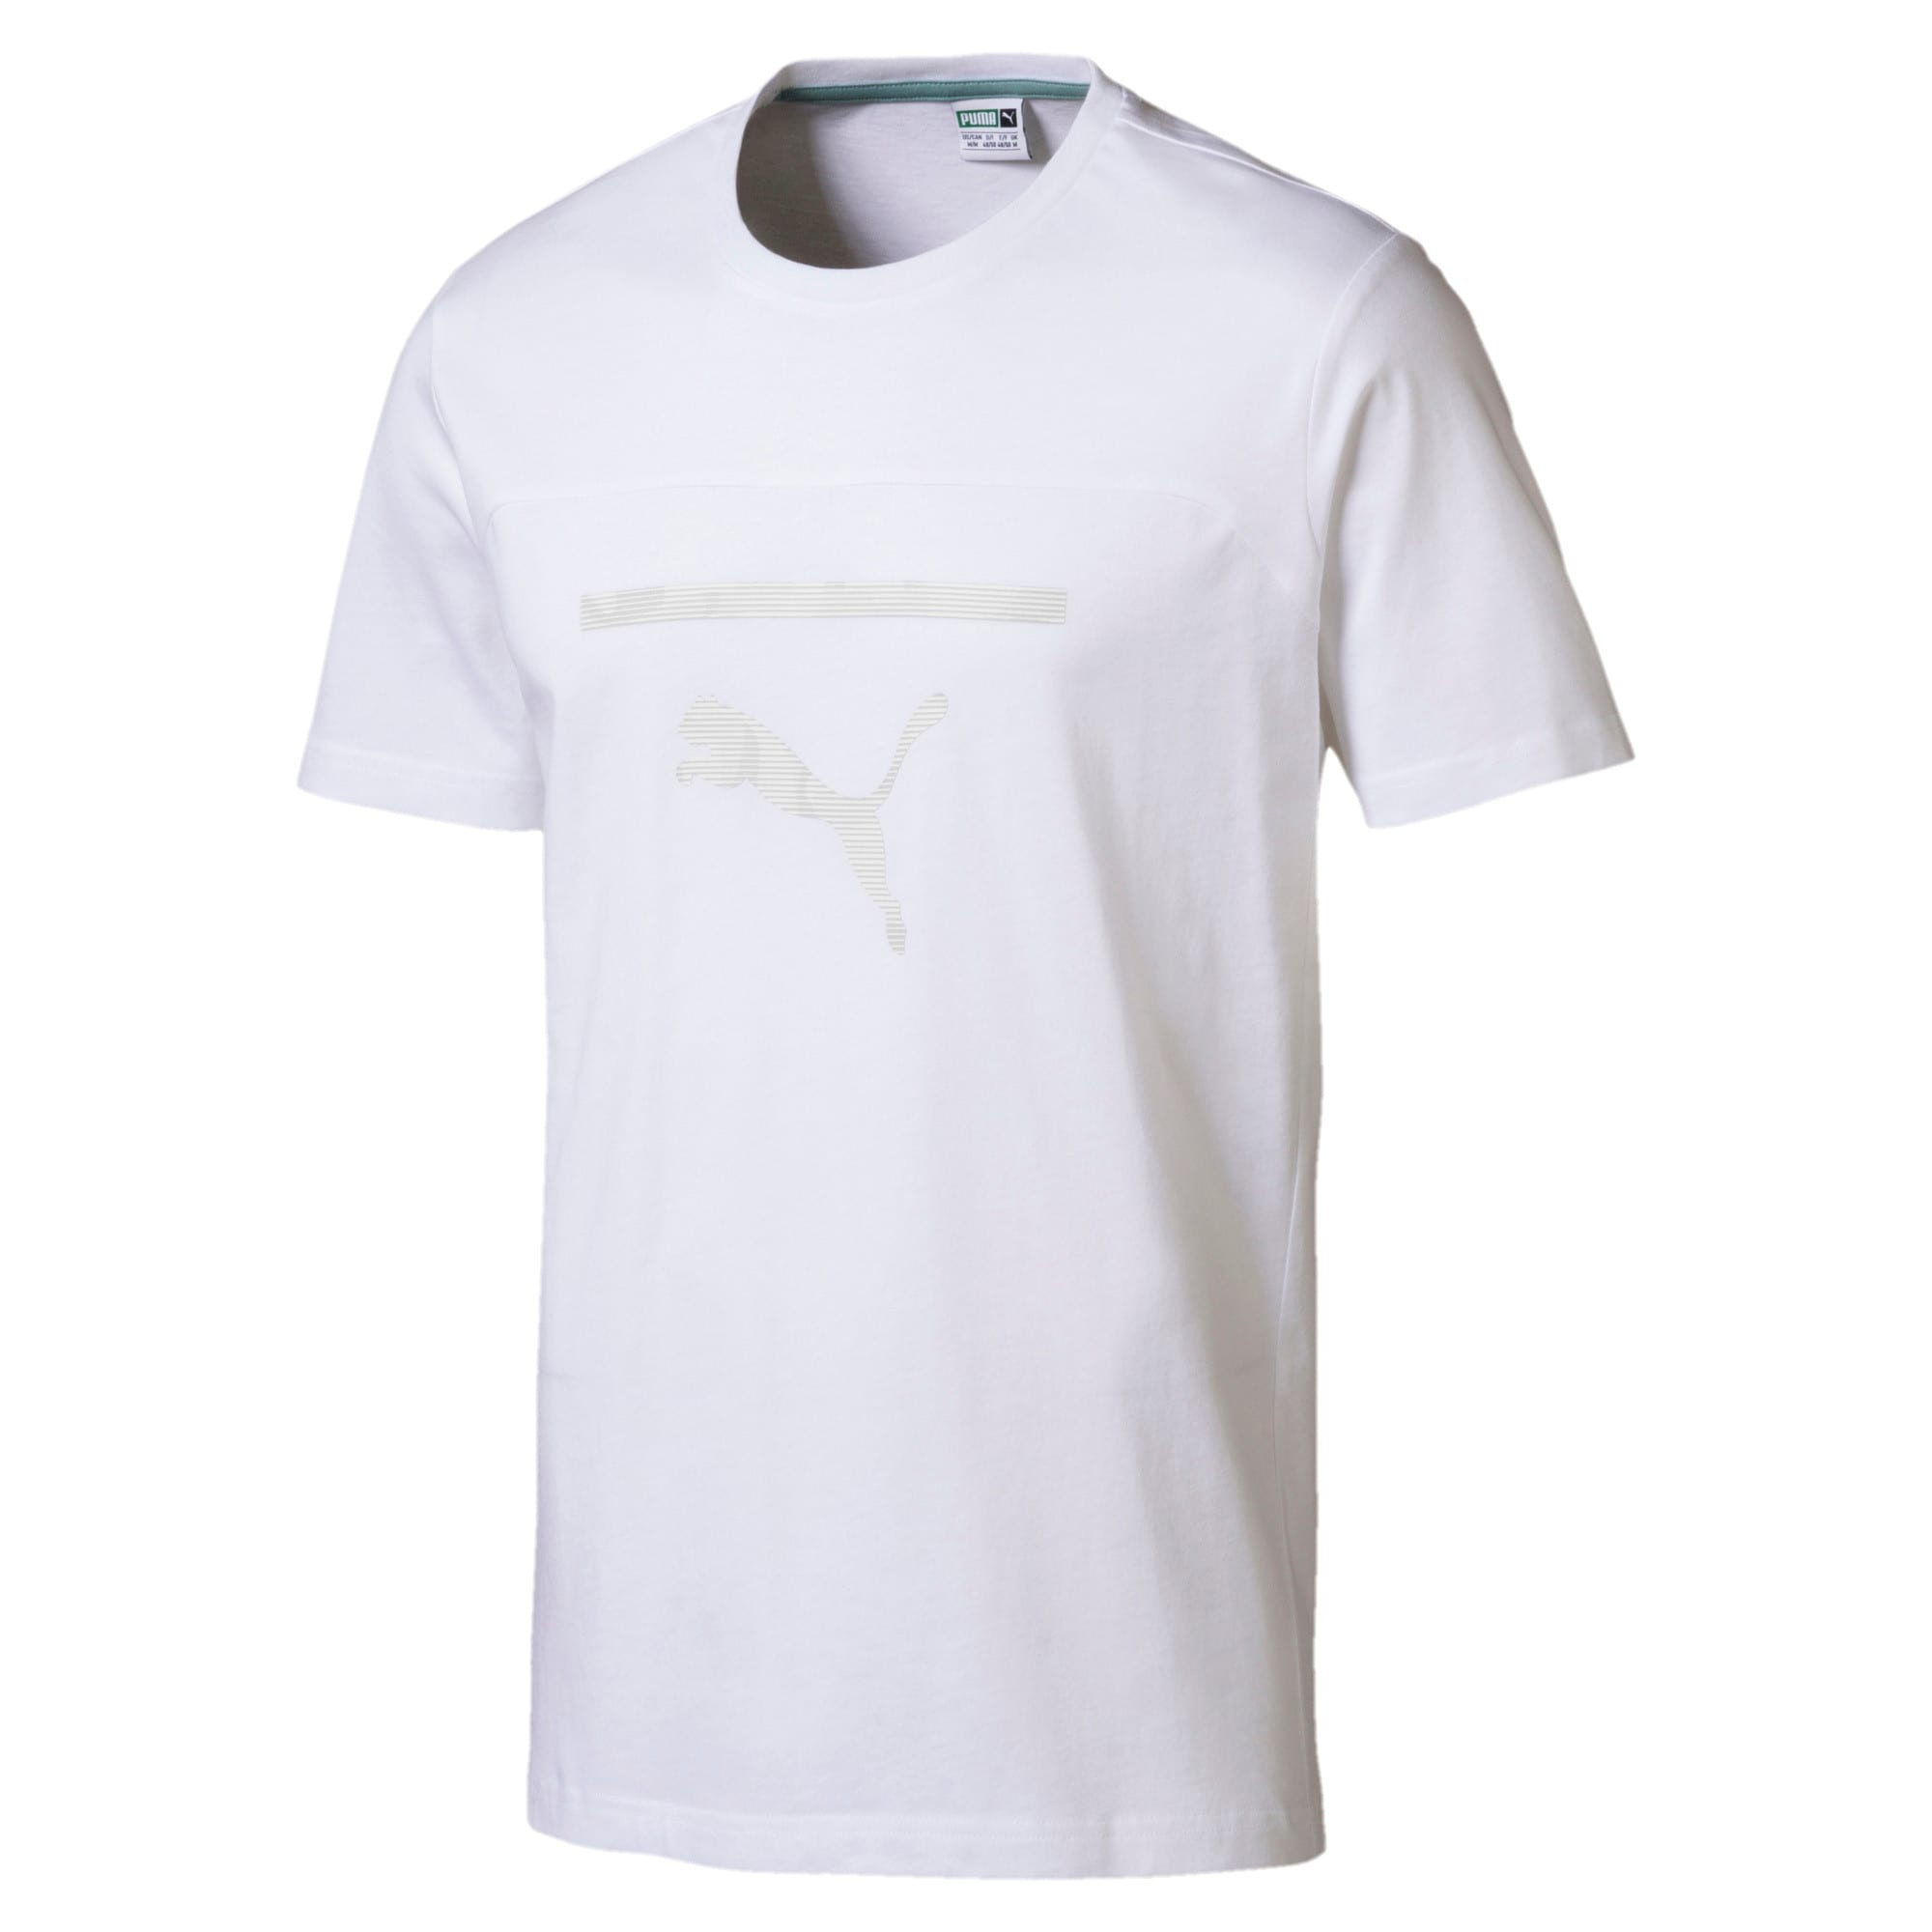 Thumbnail 1 of Pace Men's Graphic Tee, Puma White, medium-IND